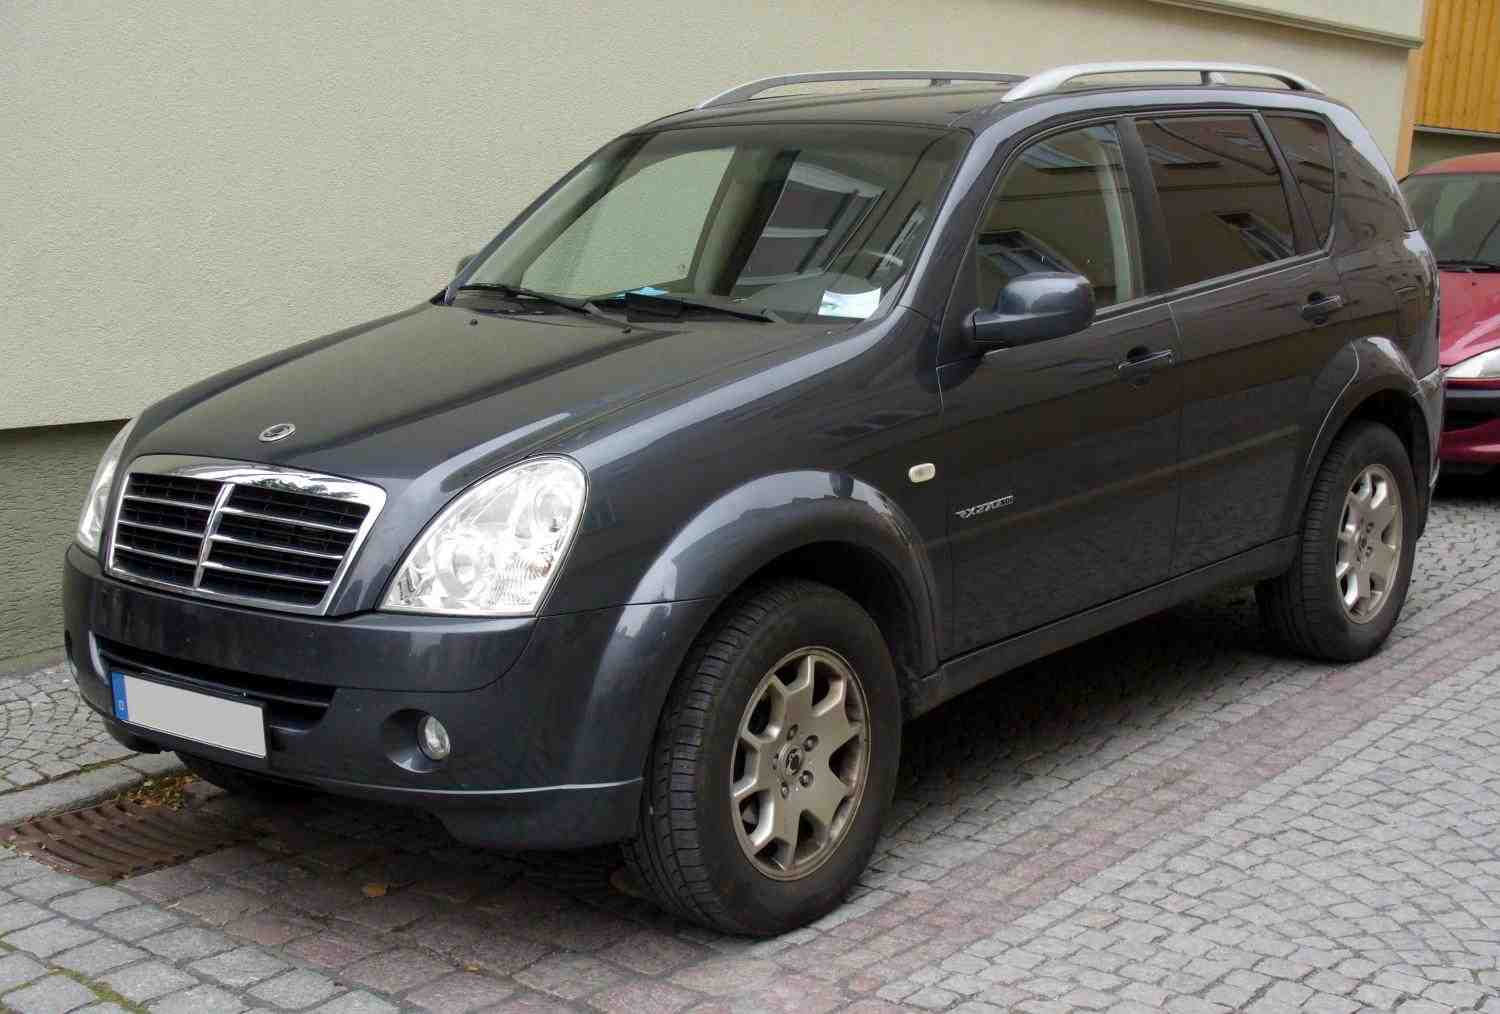 SsangYong Rexton Workshop Service Repair Manual 2002-2003 (1,871 Pages,  226MB, Searchable